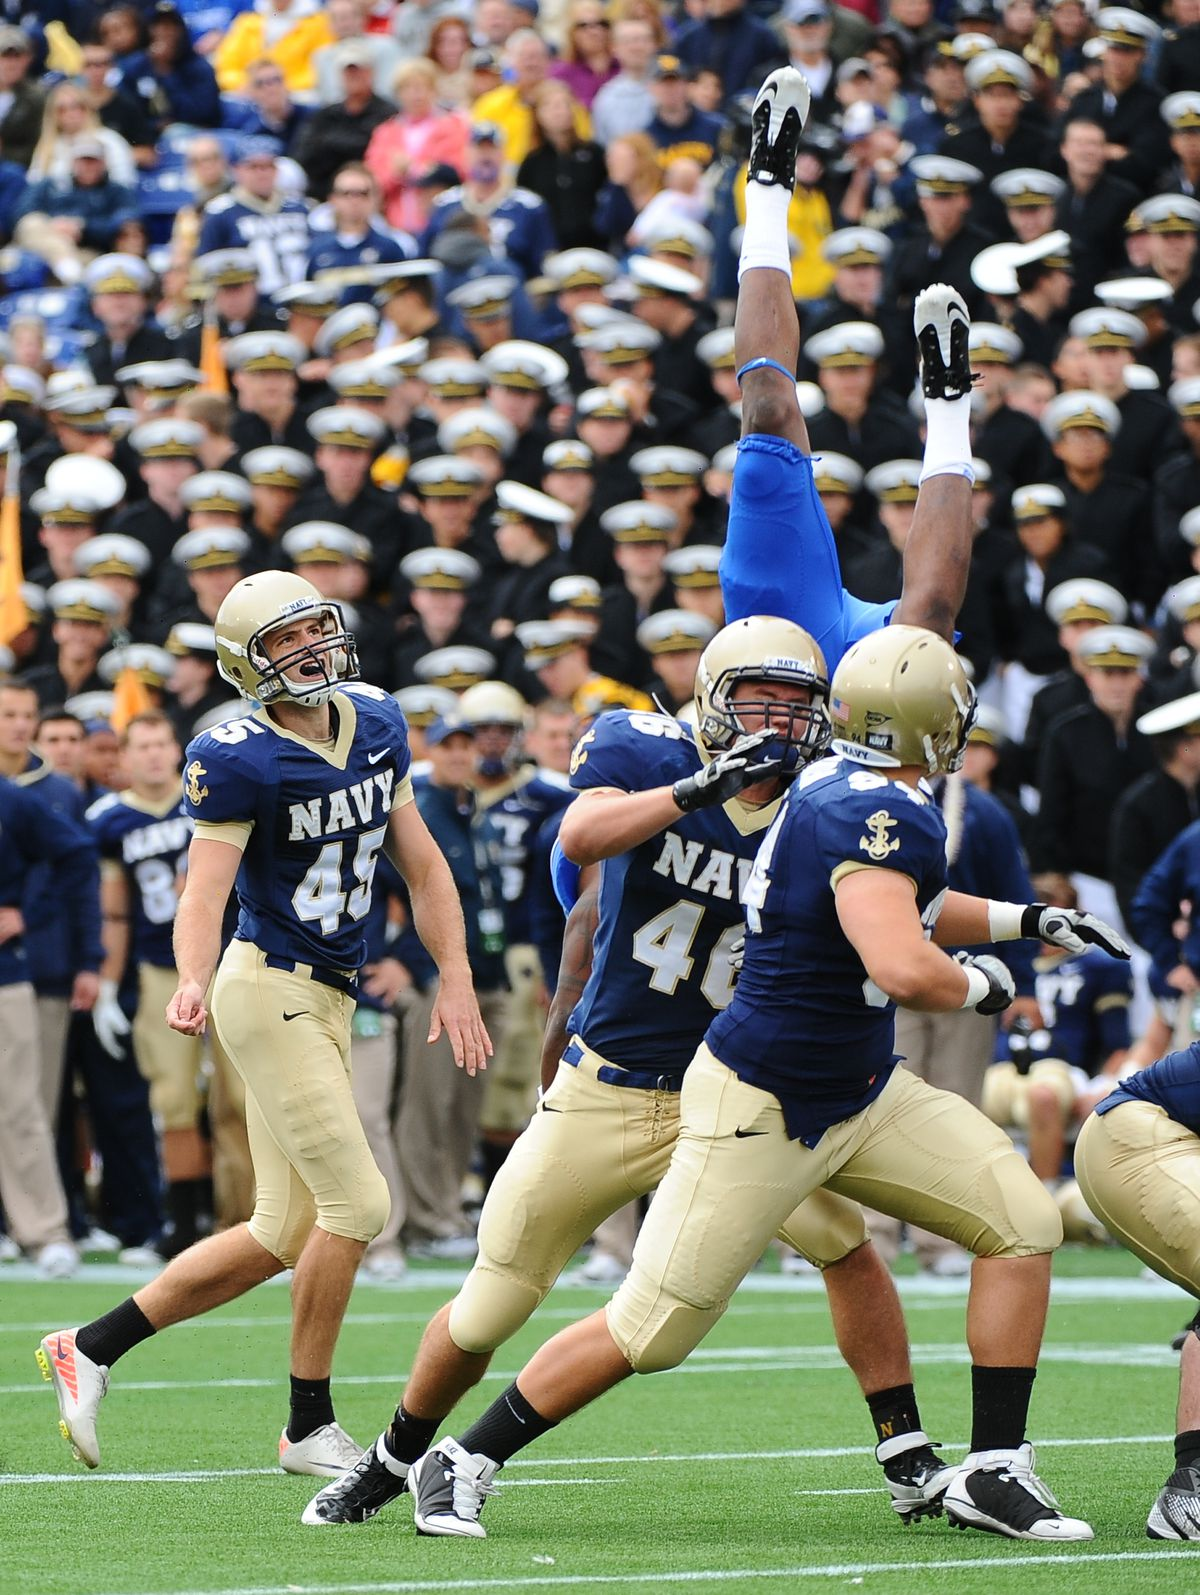 College Football-Air Force @ Navy